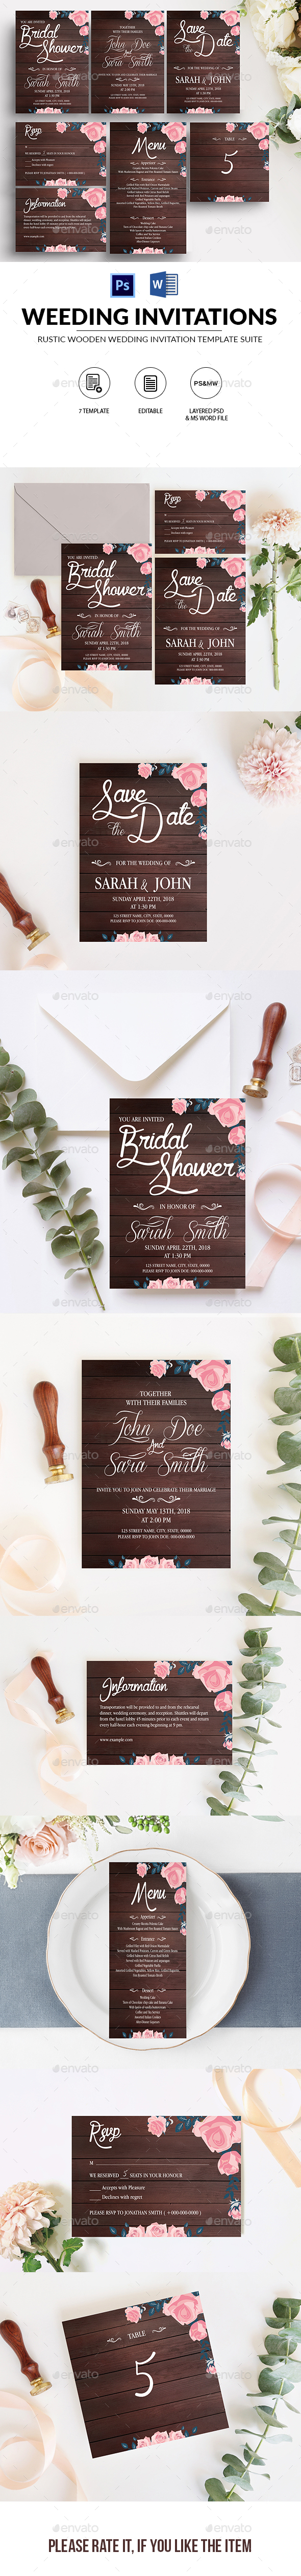 Rustic Wooden Wedding Template Suite - Weddings Cards & Invites